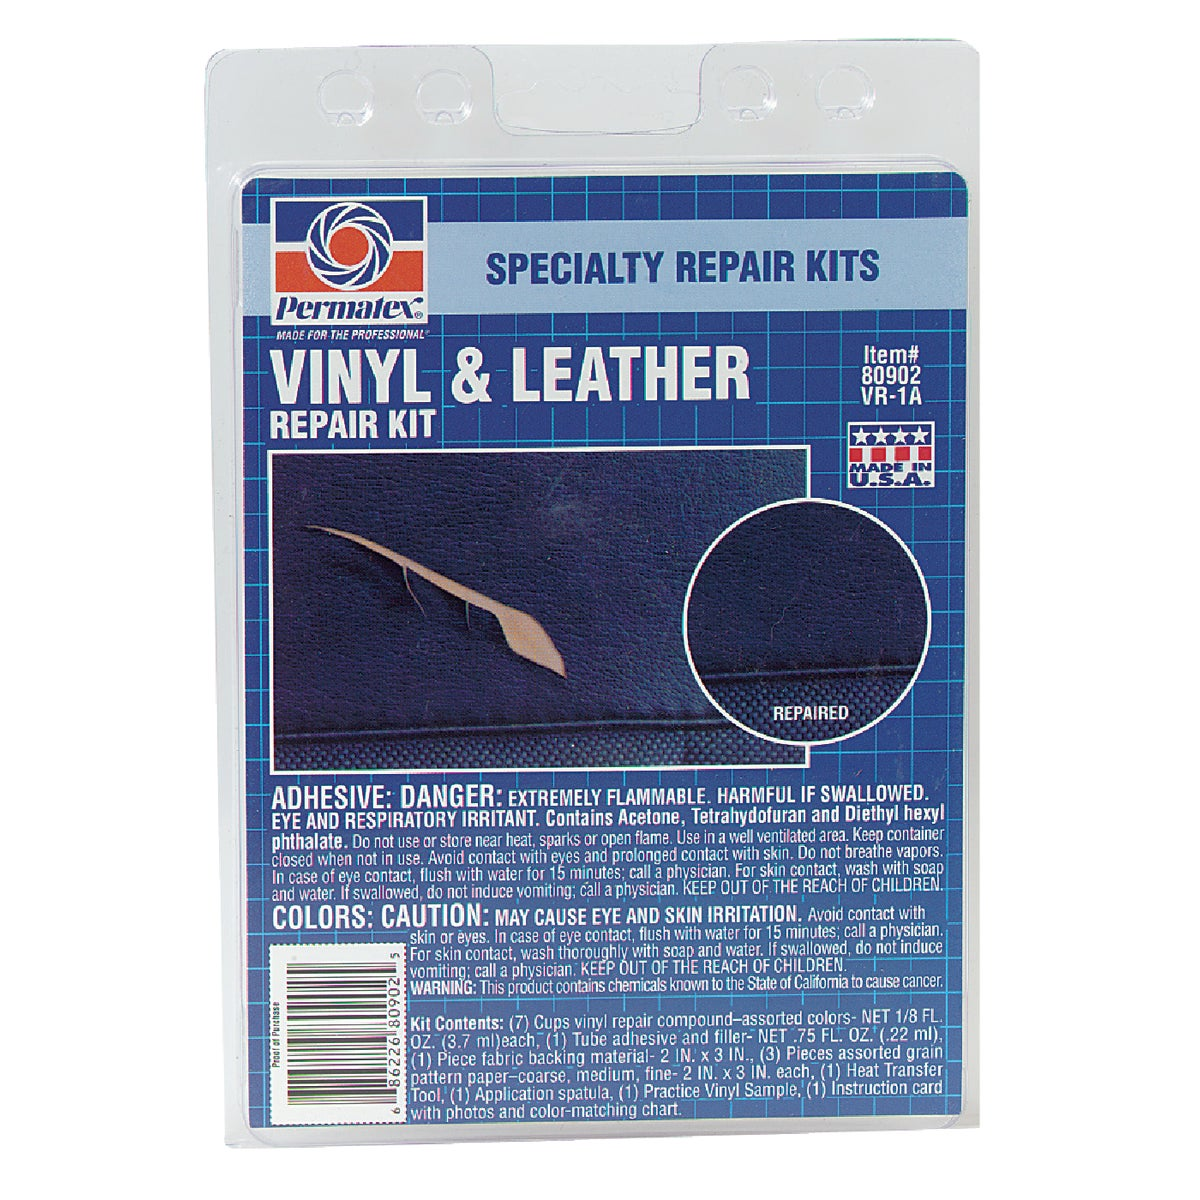 VINYL/LEATHER REPAIR KIT - 80902 by Itw Global Brands